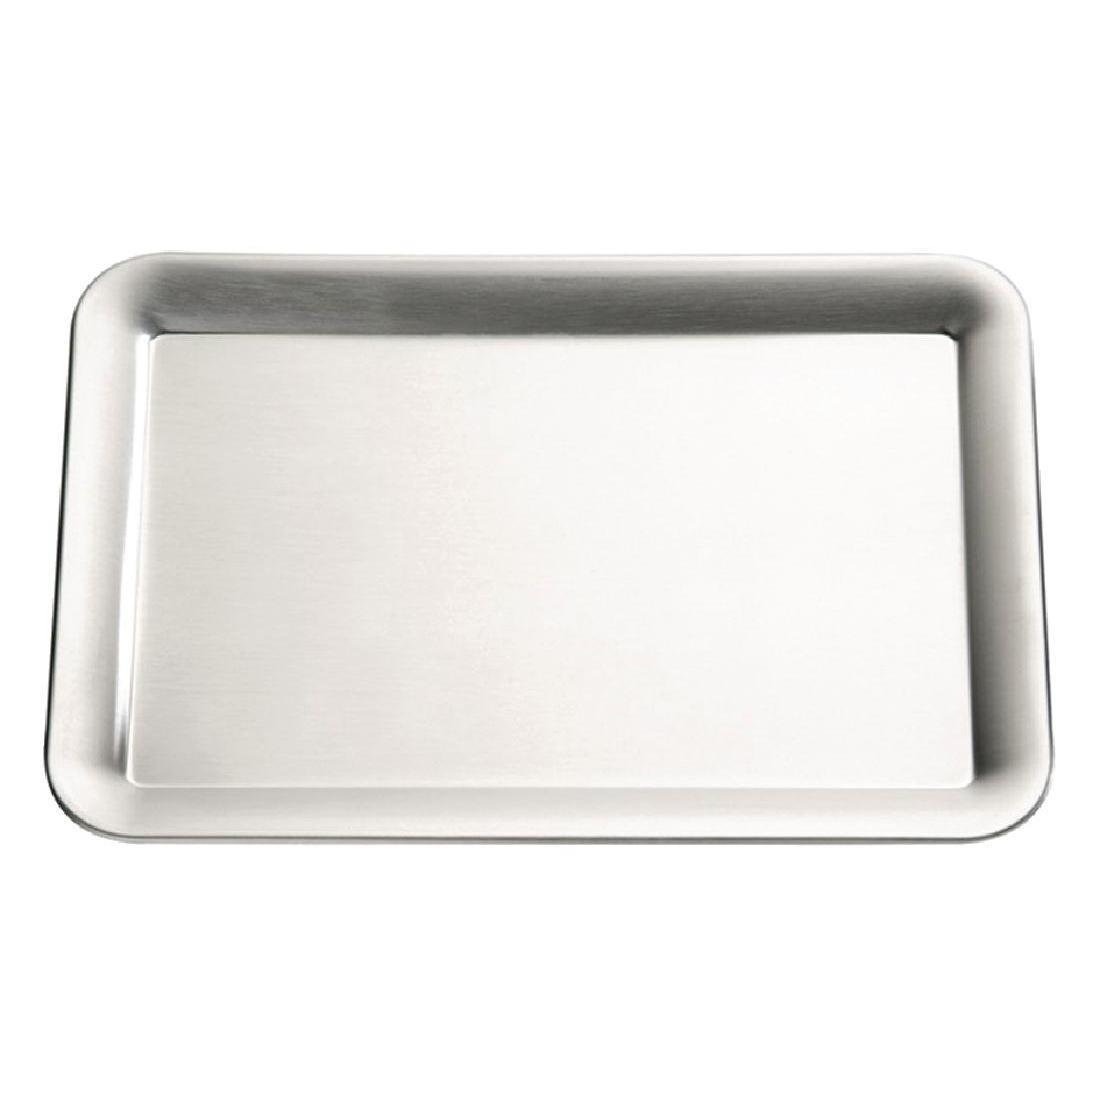 APS Pure Stainless Steel Tray - Each - GF162